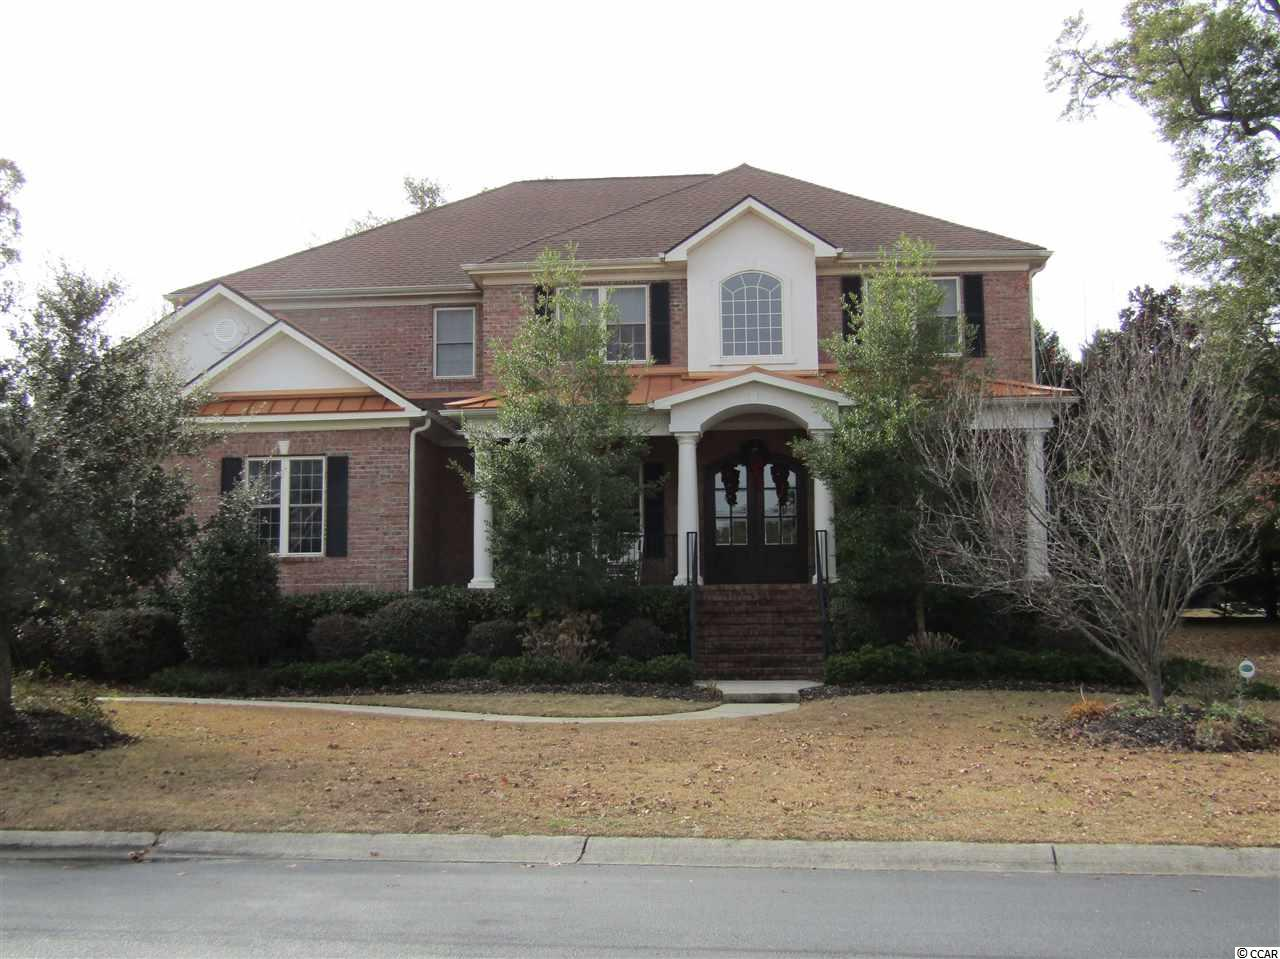 MOTIVATED SELLER!!!  Seller offering to pay one year HOA dues, Home Inspection and Offering Home Warranty!  Be prepared to say WOW when you walk into this stunning, all brick custom home in the prestigious Big Landing Plantation!  With five bedrooms, 3 full bathrooms and 2 half bathrooms and an open floor plan, this home has room to roam.  The home boasts a two story foyer and kitchen area, high quality flooring including bright, shiny hard wood, ceramic tile, custom cabinetry, crown molding throughout and many surprising architectural features like arched doorways and beveled wall corners.  As you enter the home you will see the elegant formal dining room and large office… from there you will be drawn to the spectacular gourmet kitchen with it's warm and inviting colors, stainless appliances (including two wall ovens), gas stove, granite counter tops, wraparound bar, an island with a sink and also an attached dining area with a built in desk.  Just a few steps from the kitchen is the family room featuring a fireplace and custom built in book cases.  The over sized master suite is exquisite with its tray ceiling, expansive walk-in closet and amazing master bath that features a huge garden tub, stand-alone shower and double vanities.  On the second level you will find the lofted game room which includes a spectacular Old English pub style bar area.  A draw for nights of entertaining friends and family or just kicking back and watching the big game!  The second floor also has four bedrooms and two full bathrooms.  Other home features include ceiling fans throughout, an integrated sound system, a screened porch that leads to the fenced back yard and a huge two car garage with plenty of room for storage, beach items and even a work area. Pictures do not convey how absolutely beautiful this home is!   Big Landing Plantation is a double gated waterway community that's conveniently located between the amazing beaches in Sunset Beach, NC and North Myrtle Beach, SC.  The com